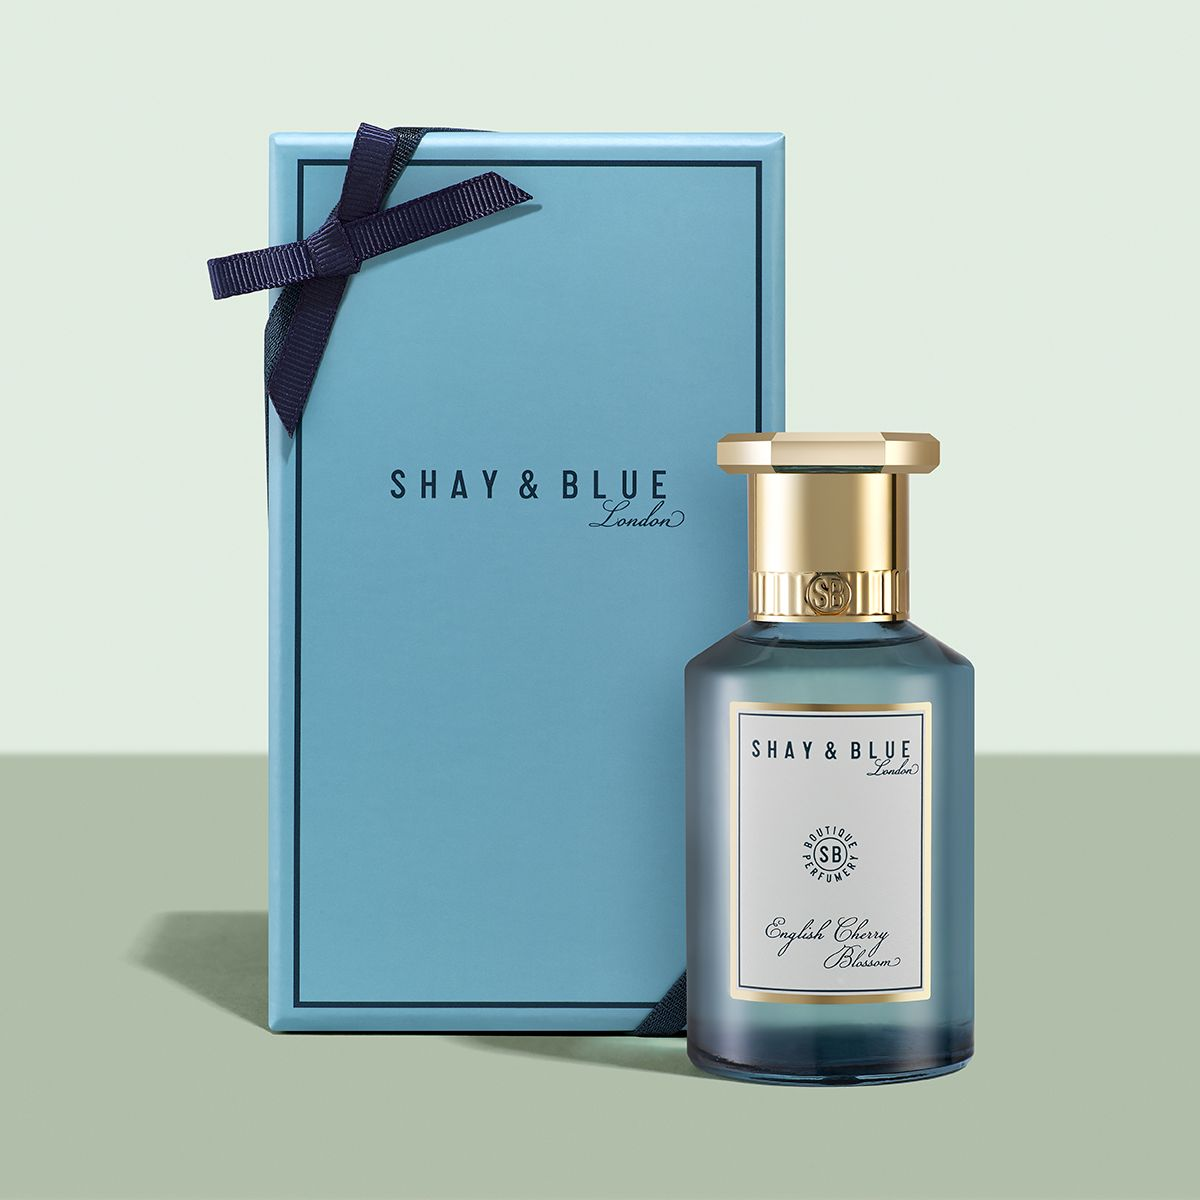 Get your Free Shay & Blue Fragrance